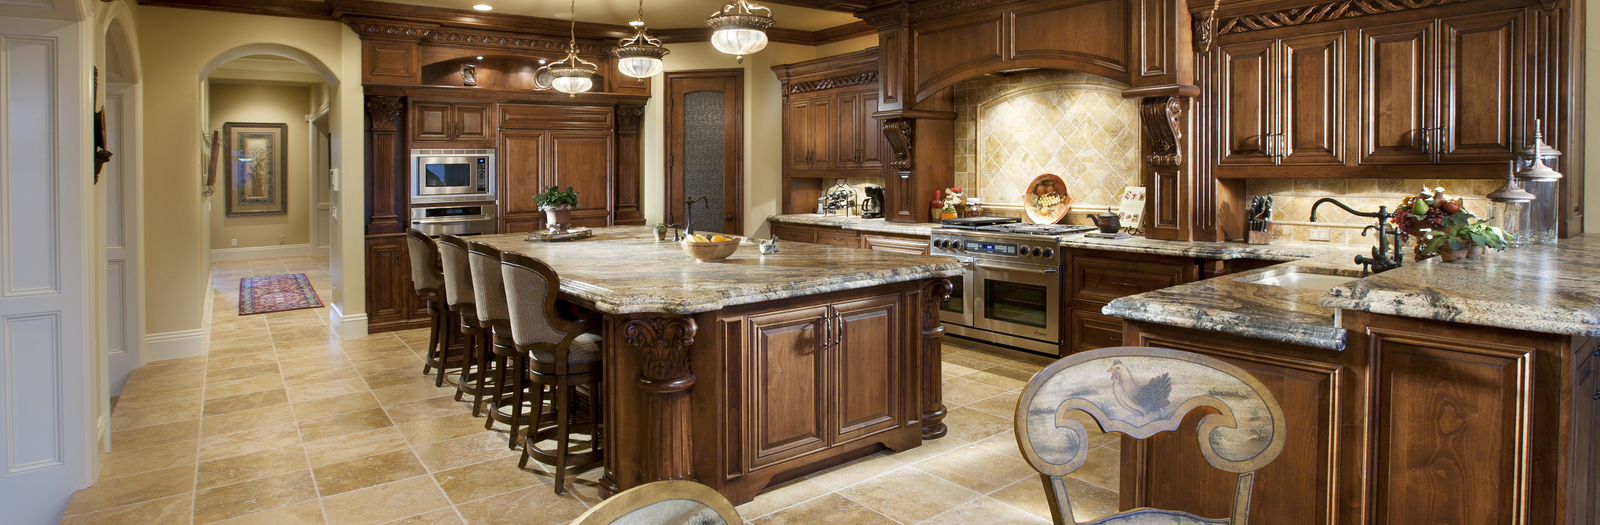 Tuscan Kitchen With Large Stainless Steel Appliance